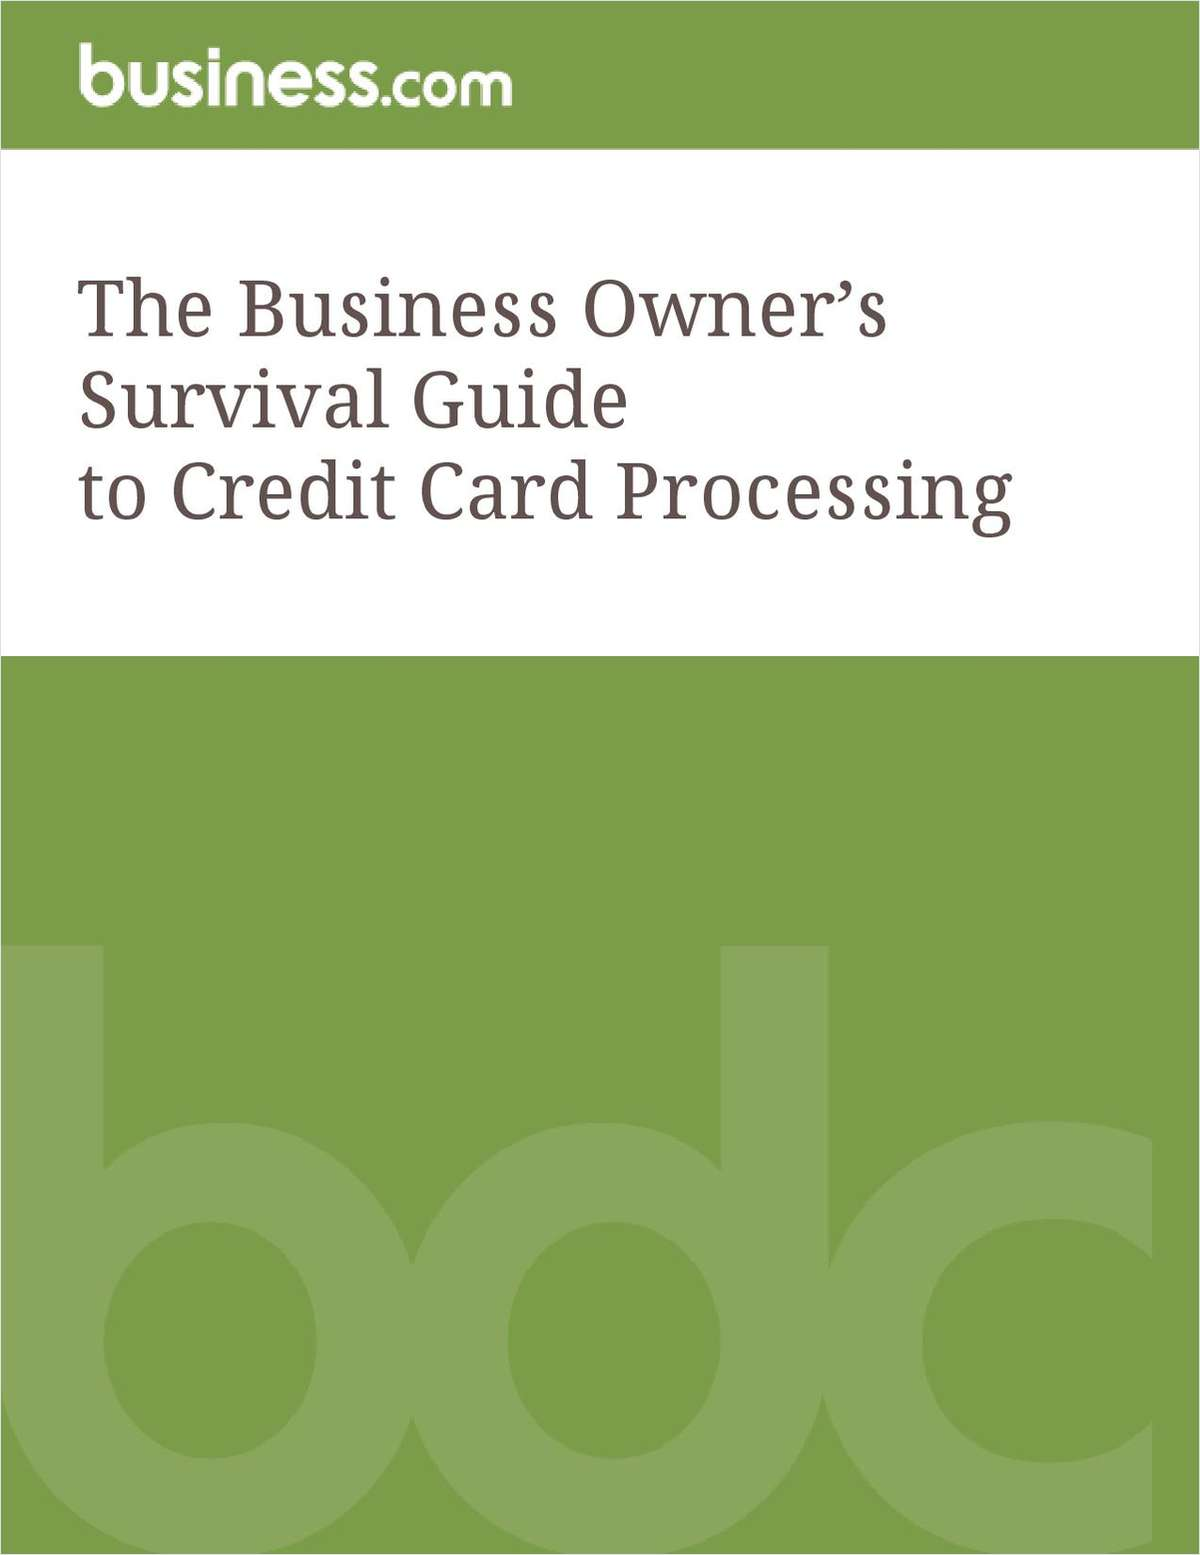 The Business Owner's Survival Guide to Credit Card Processing